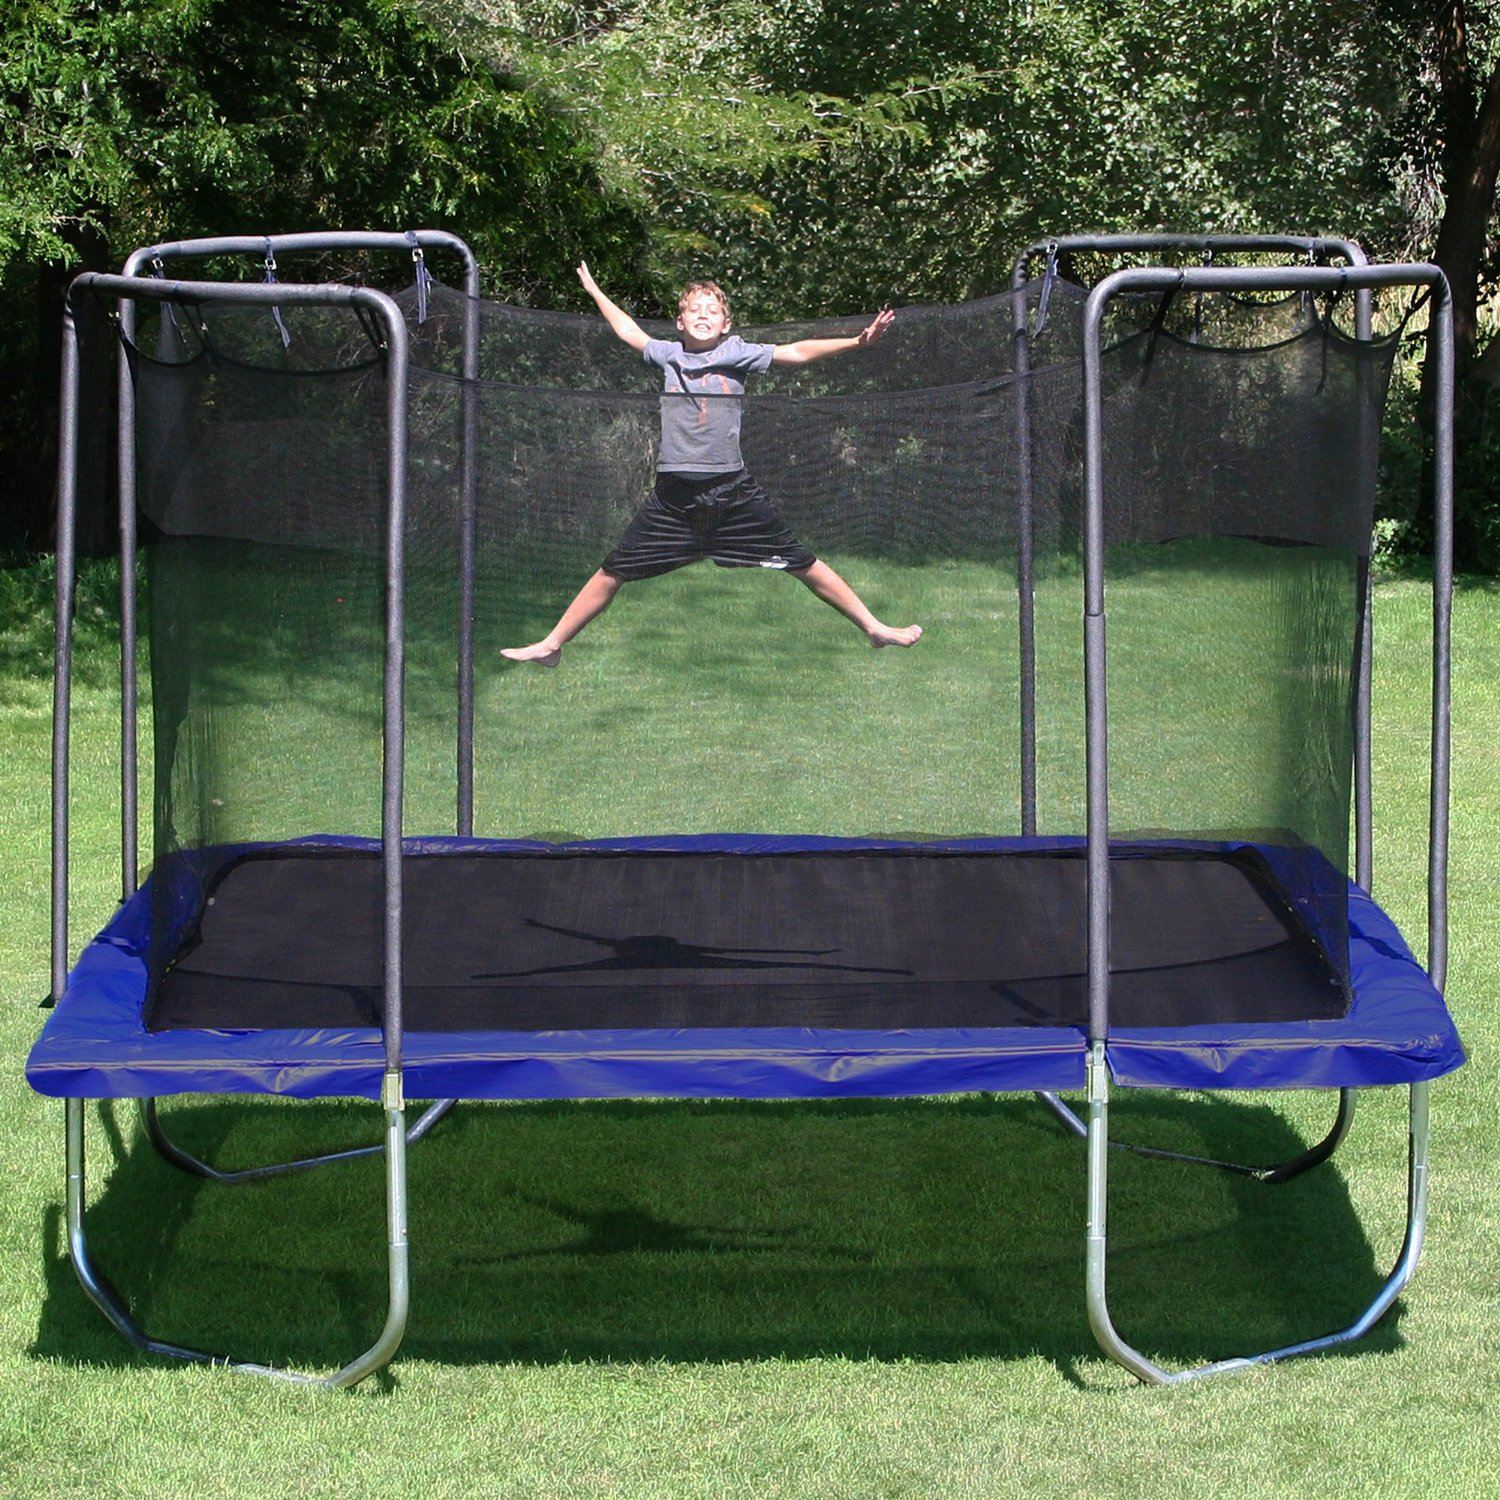 enclosed trampoline sizes and weight